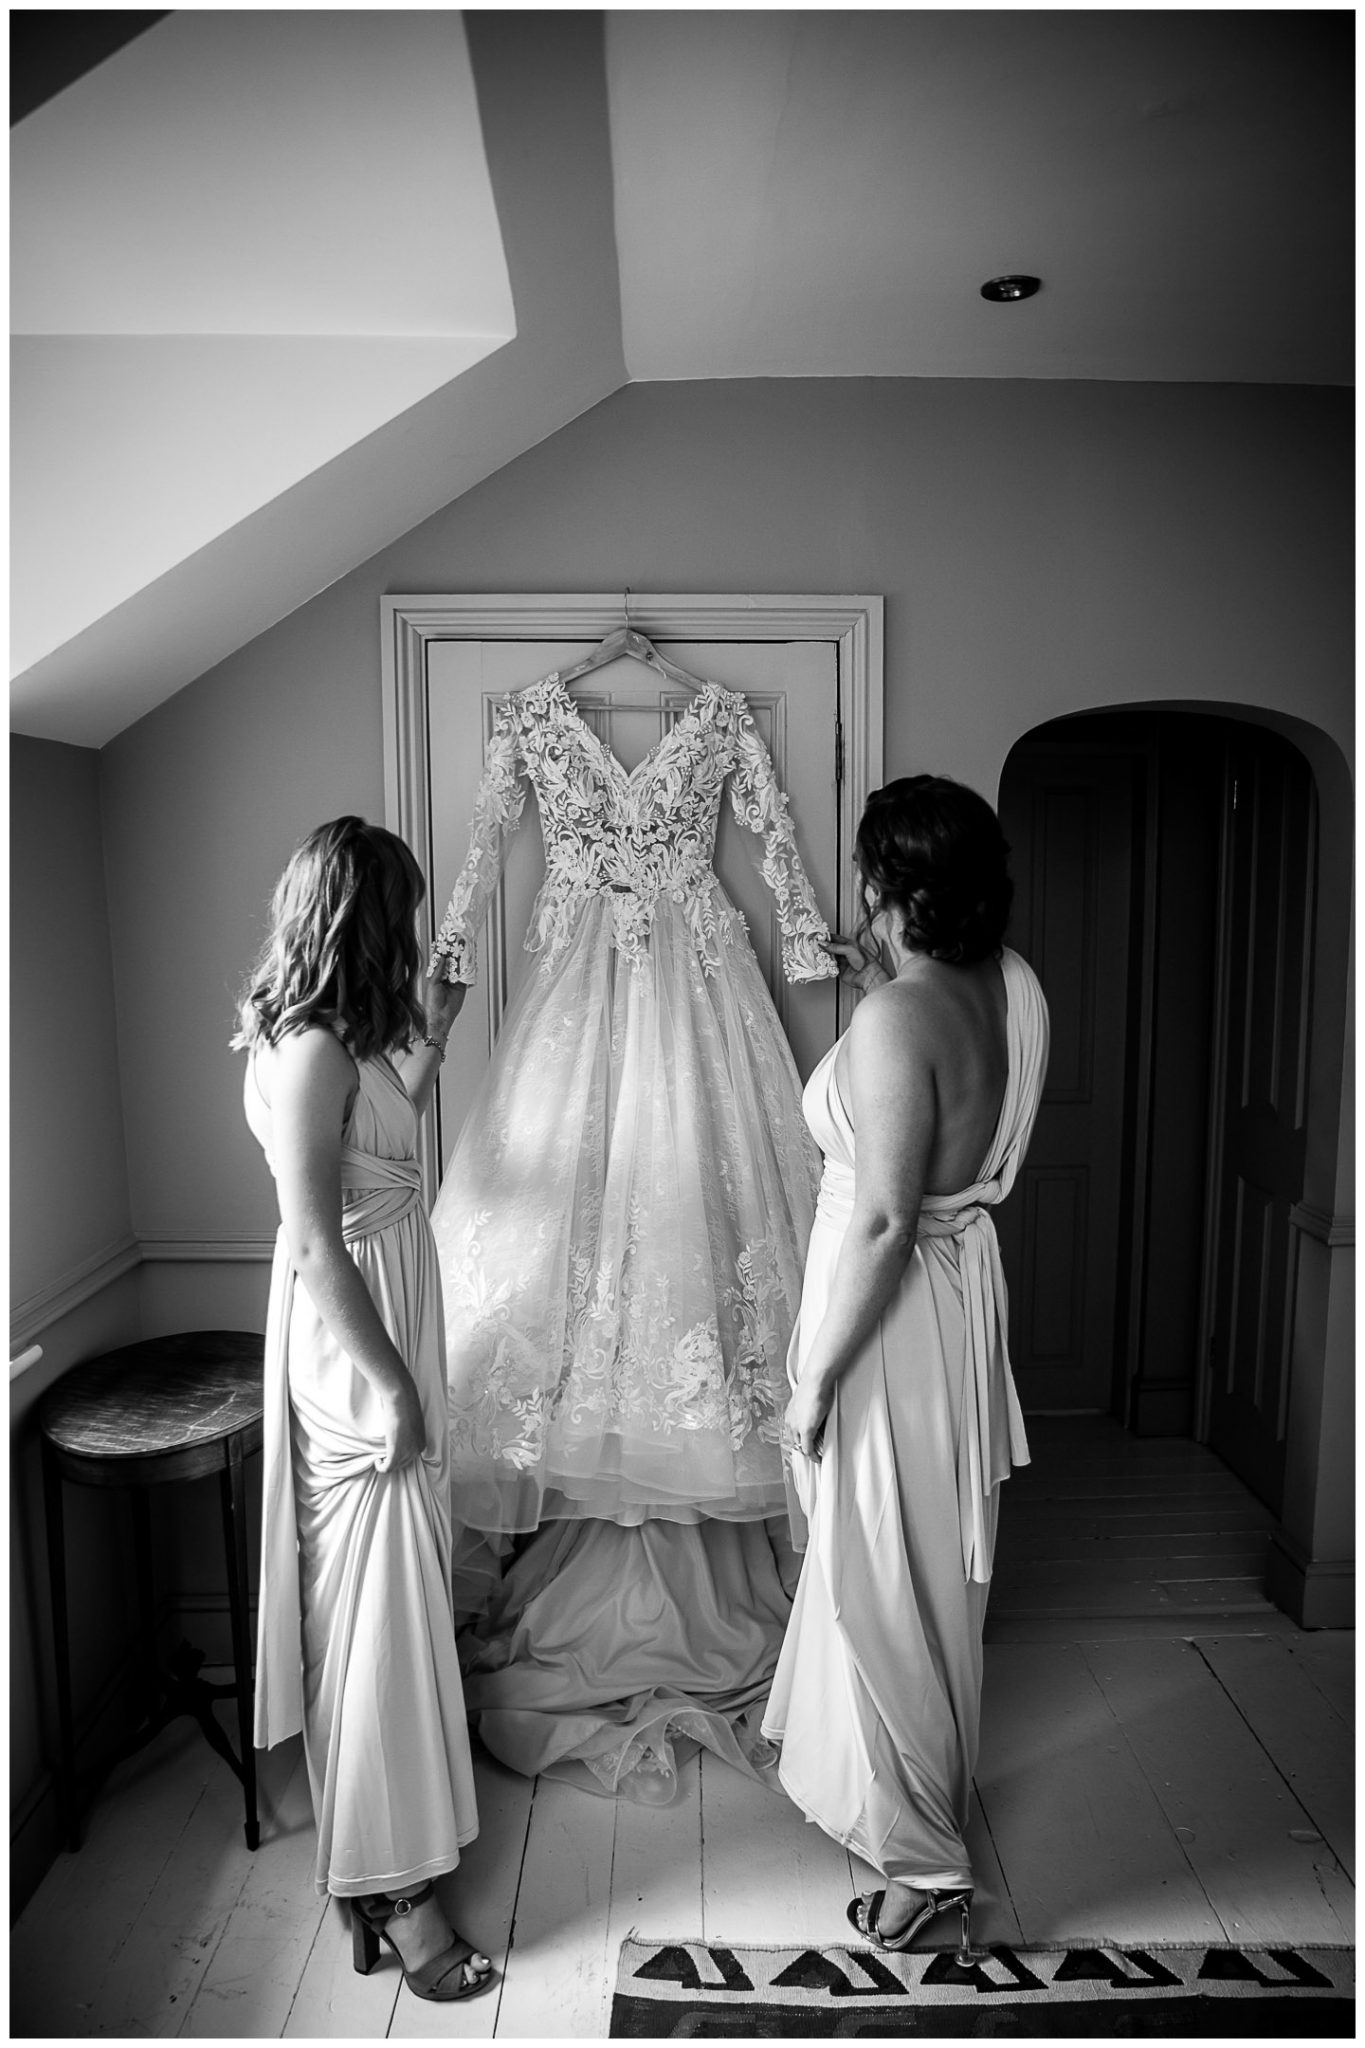 The bridesmaids look at the wedding dress